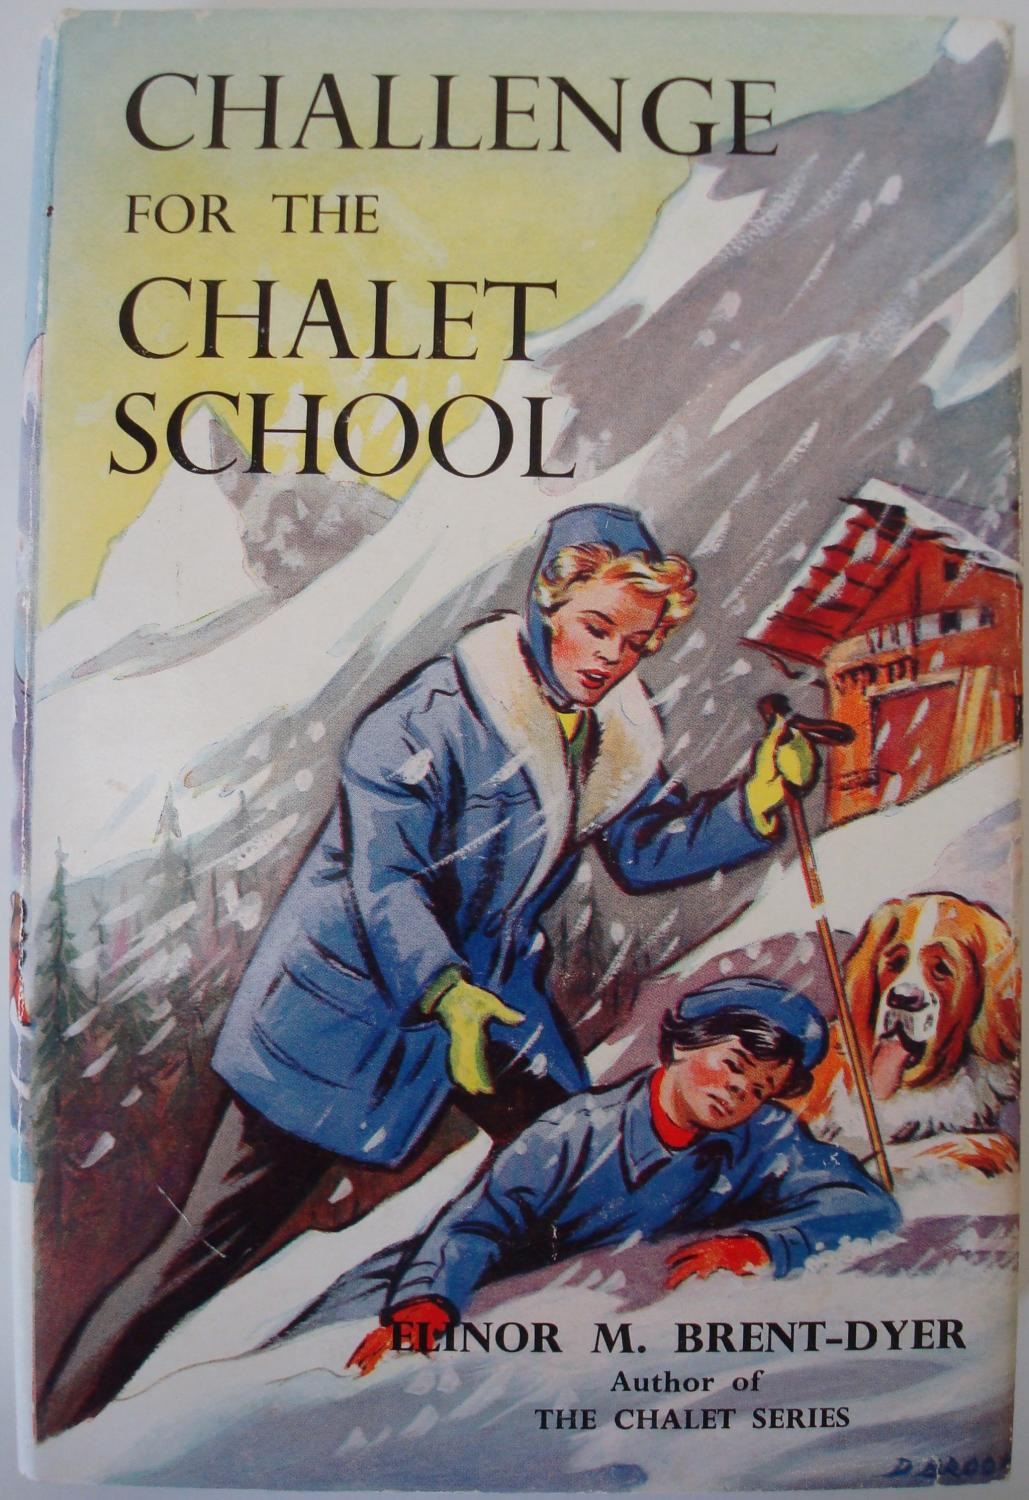 Challenge for the Chalet School: BRENT-DYER, Elinor M